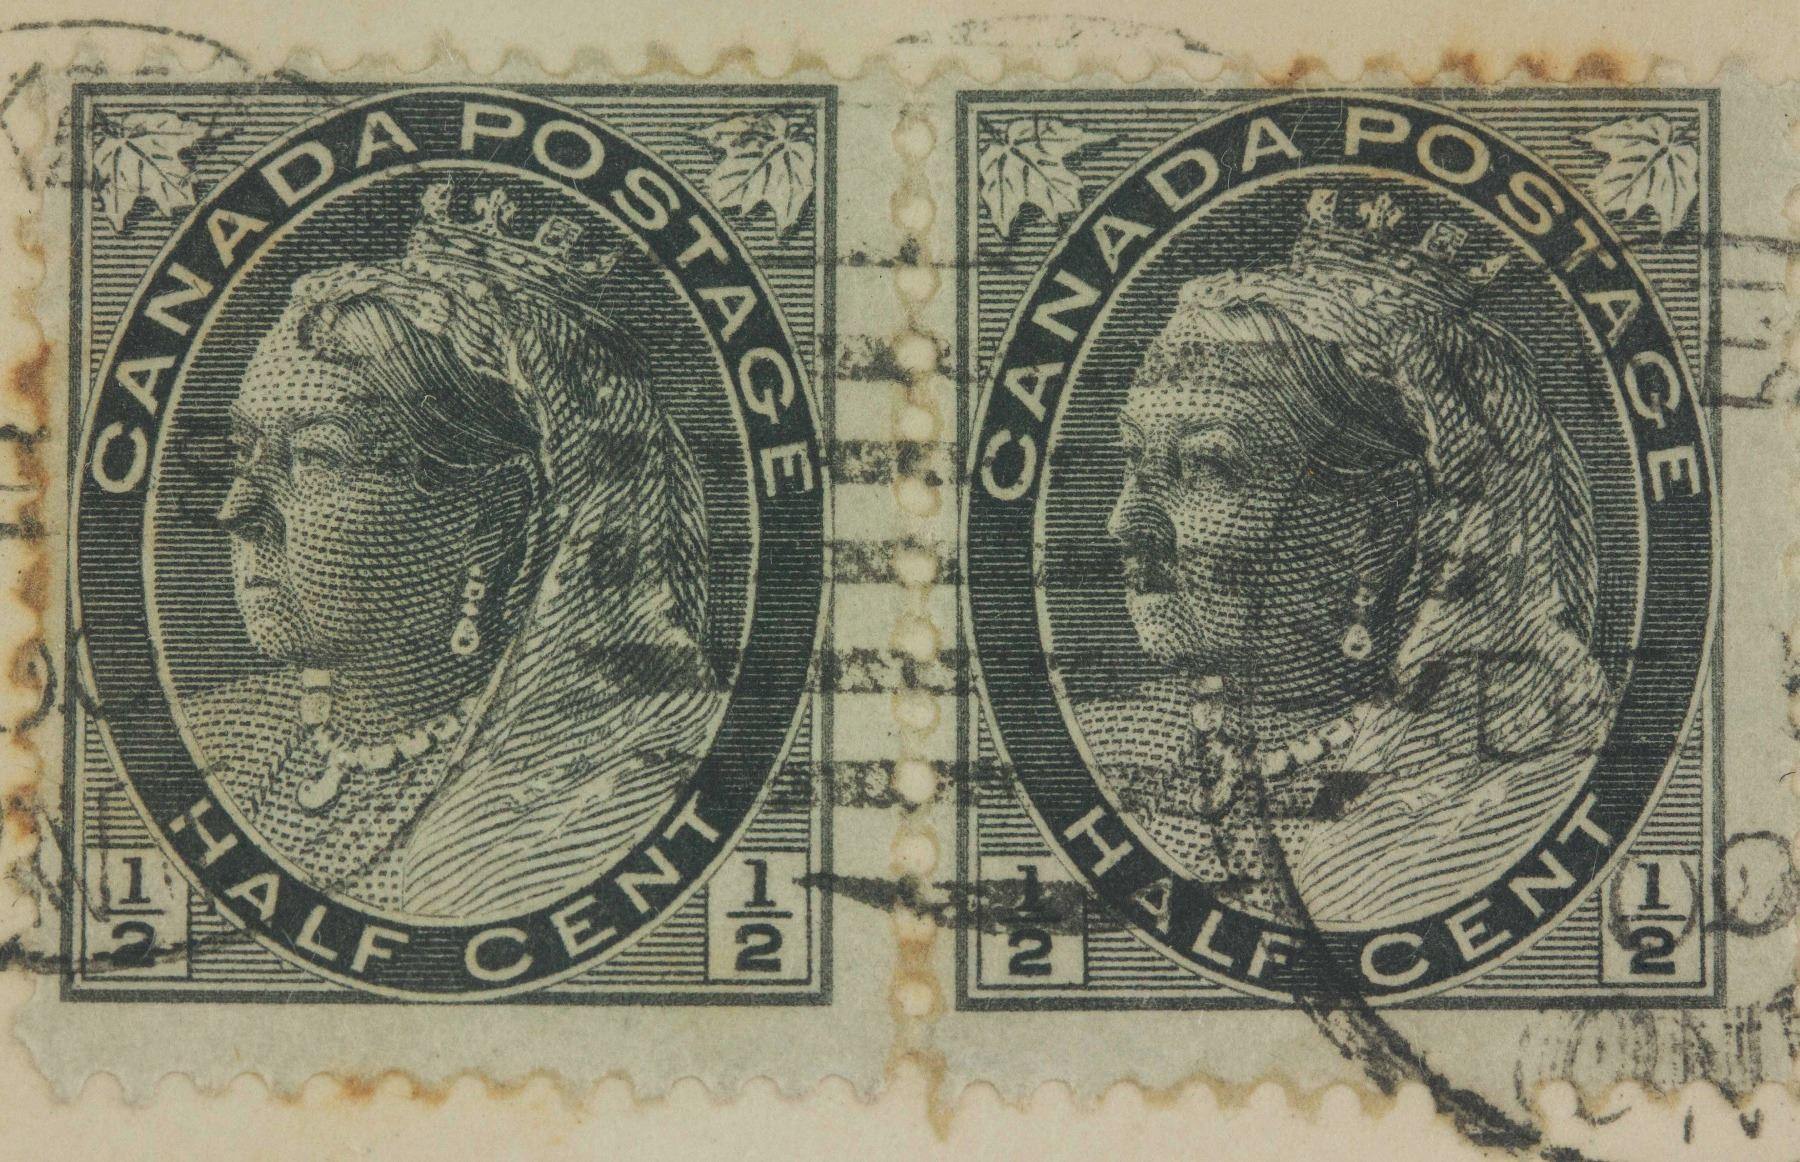 Image 2 PC 1899 Canadian Half Cent Stamps With Envelope